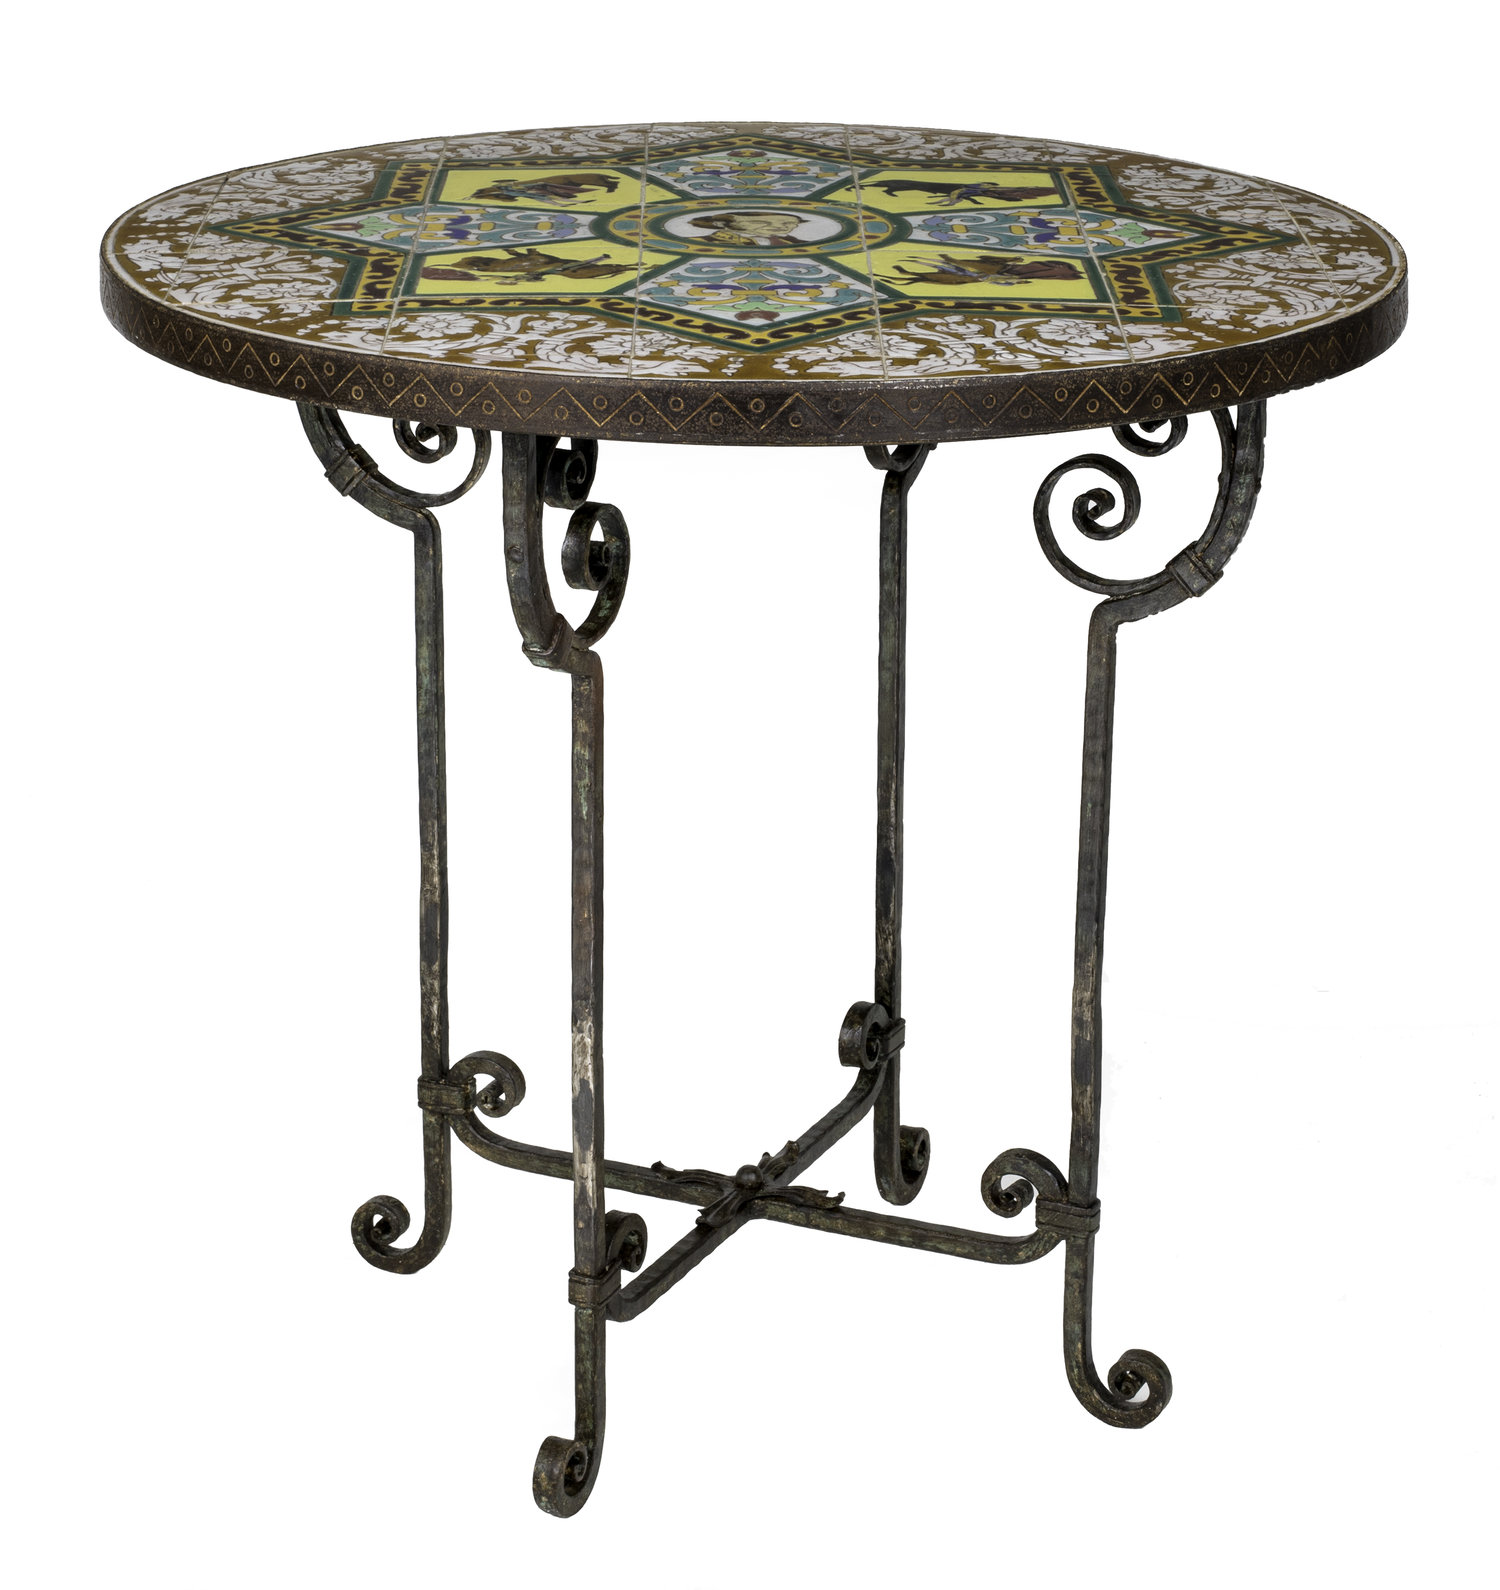 1930s Spanish Bullfighter Round Tiled Top and Iron Table — Grace